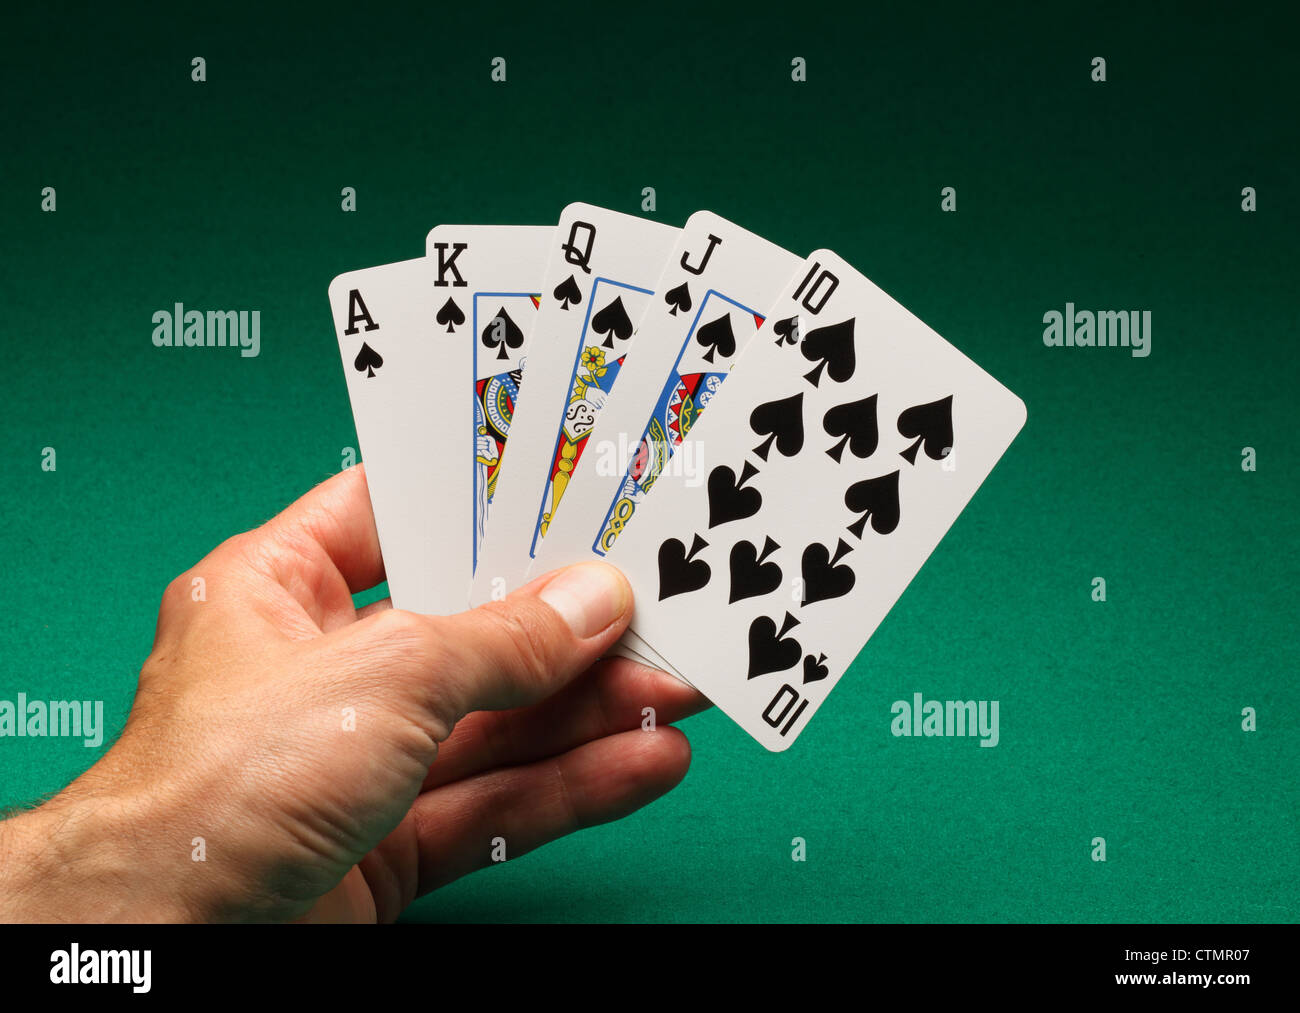 A man's hand holding playing cards on a green table. A Royal Flush of spades in the game of Poker - Stock Image